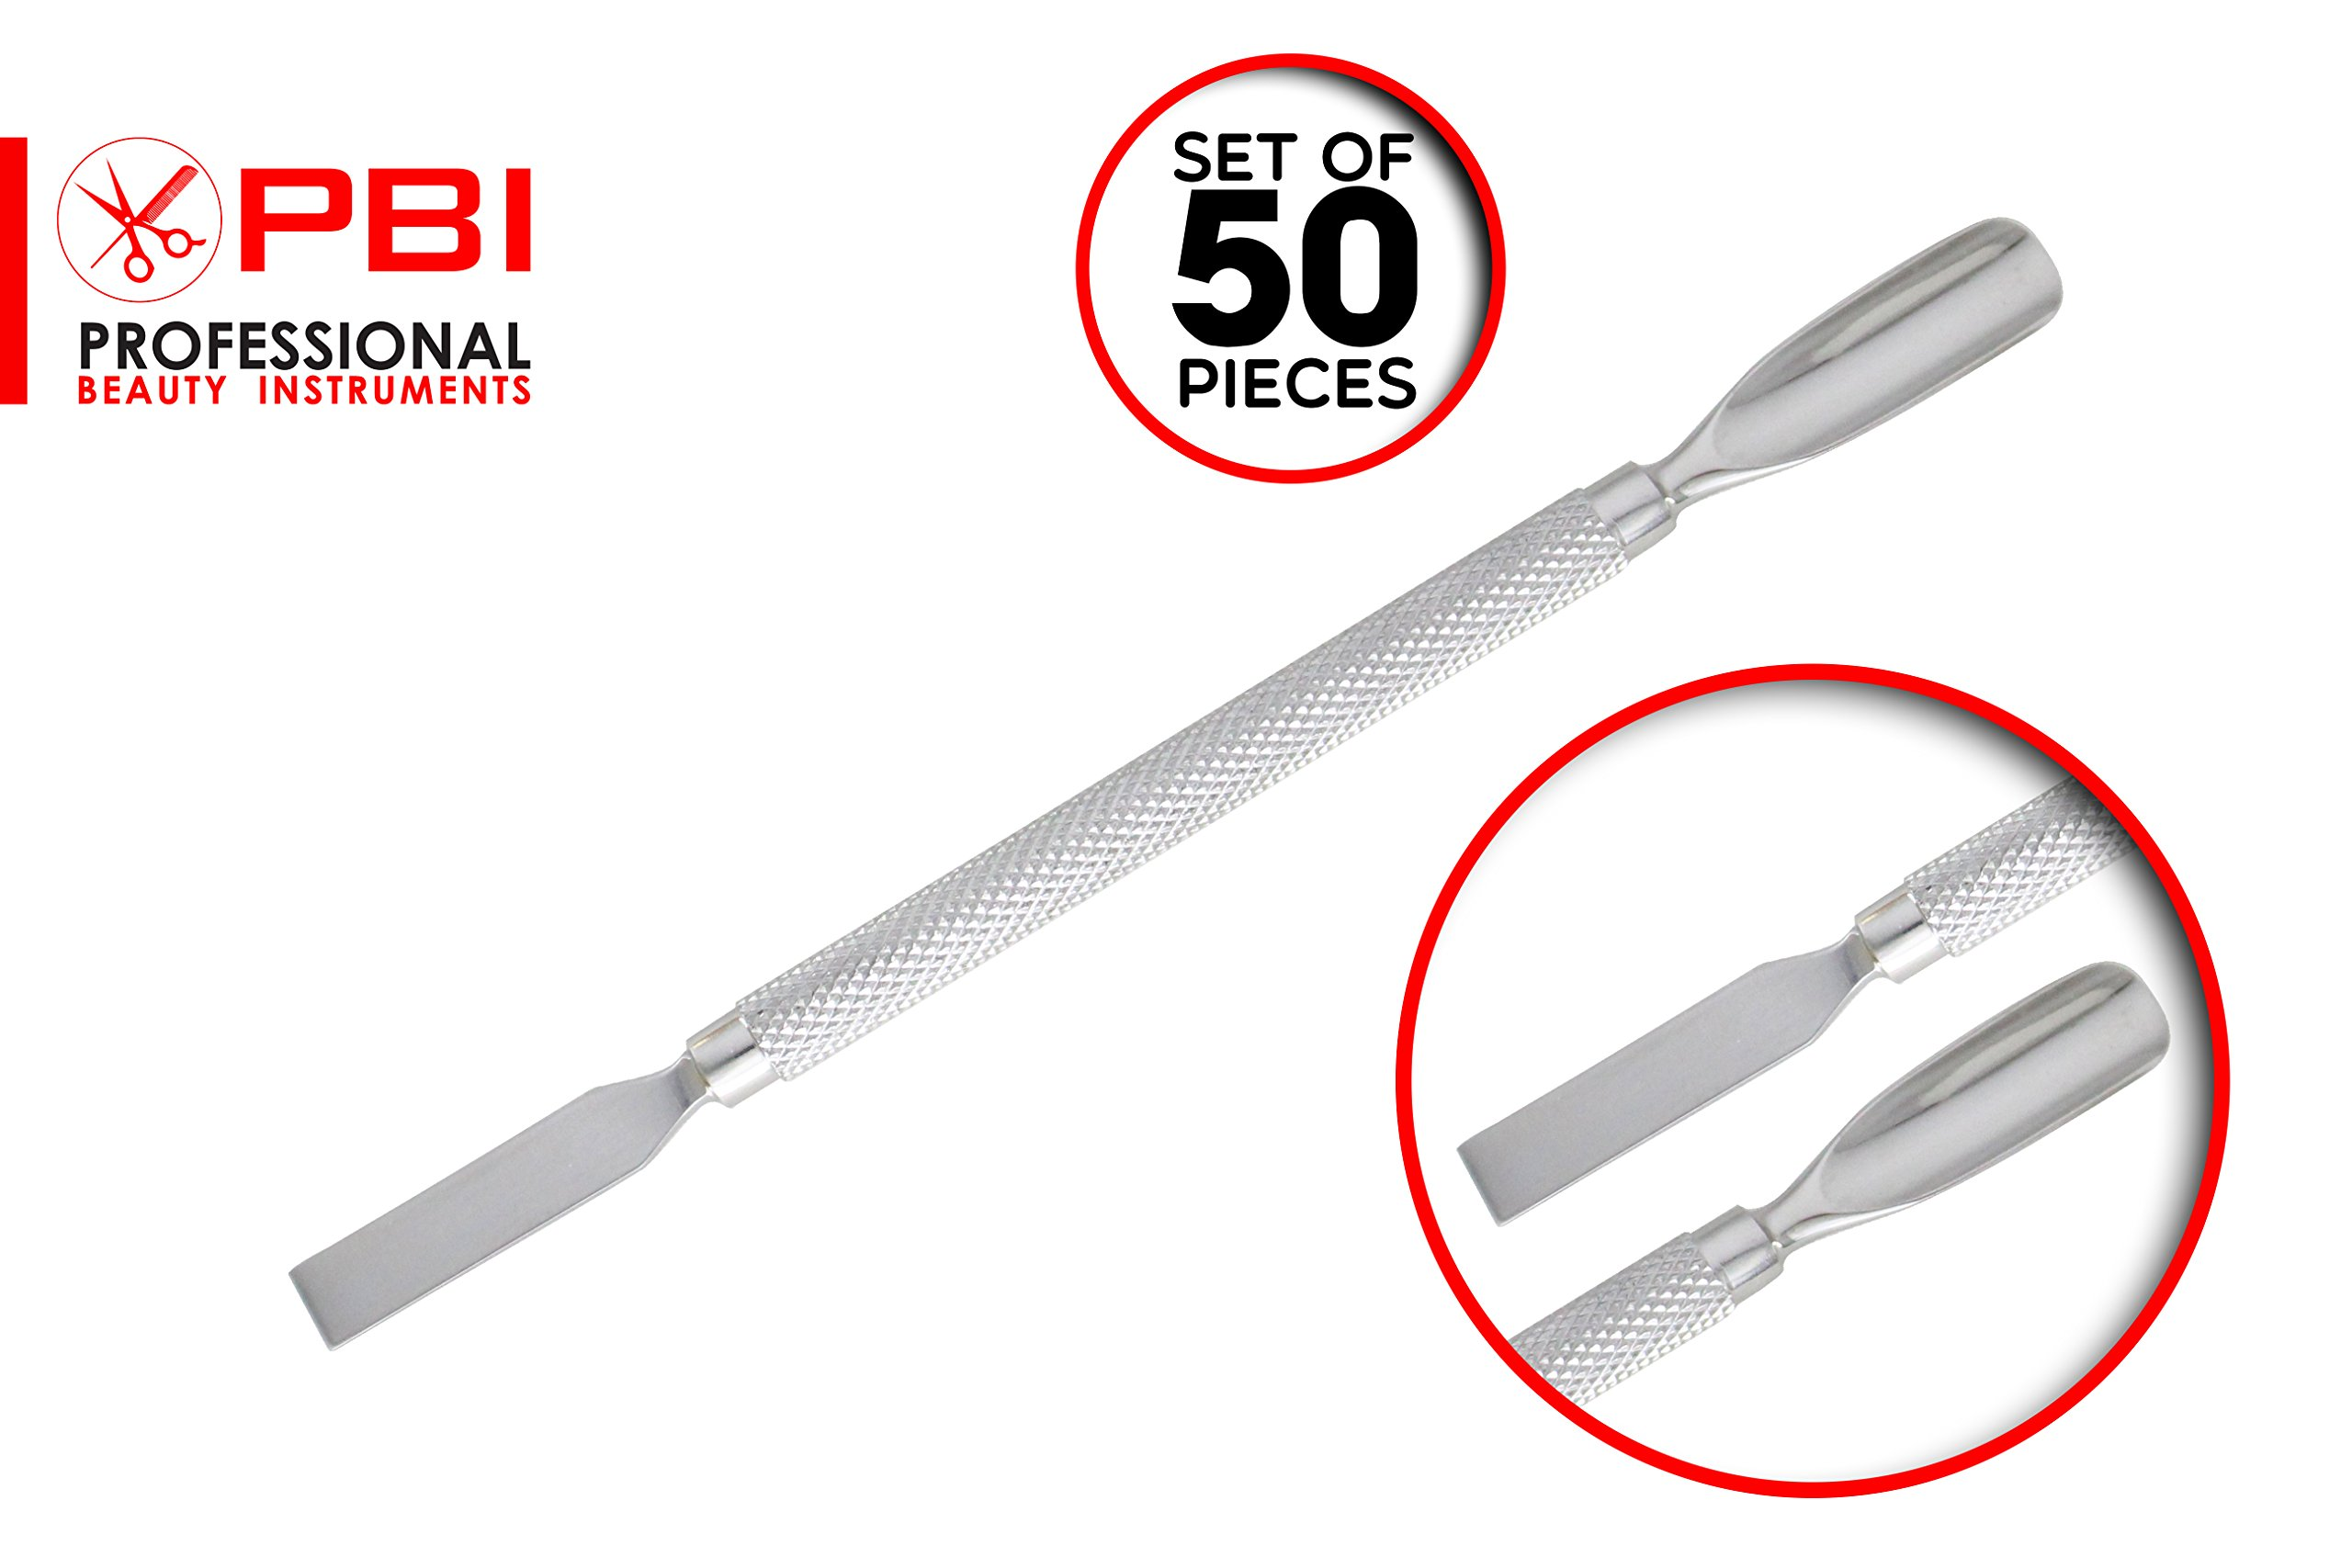 Cuticle pusher - Nail pusher - Manicure pedicure nail pusher - double function cuticle pusher - 14.5 cm - 50 pieces set - Stainless steel from PBI